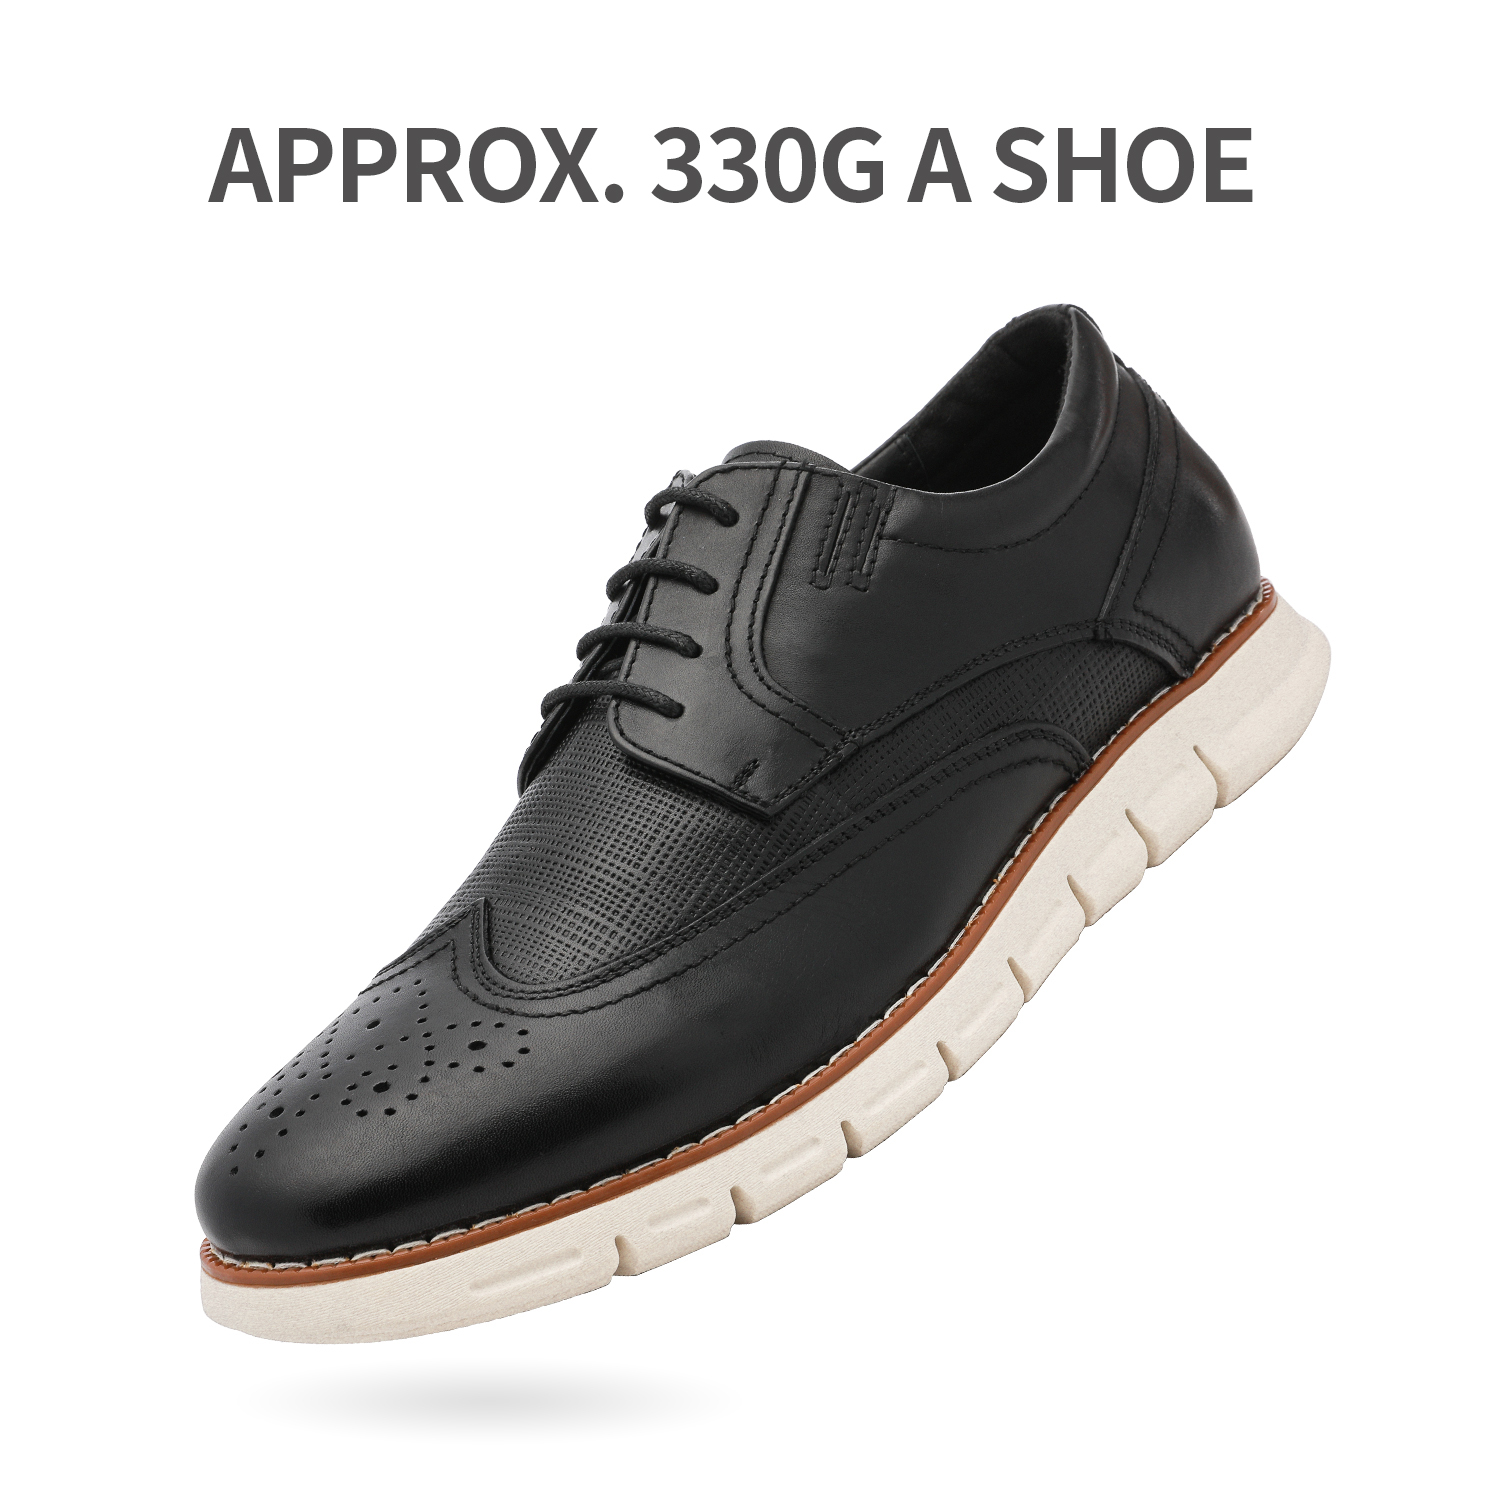 Men-s-Genuine-Leather-Casual-Formal-Sneakers-Lace-up-Business-Oxford-Dress-Shoes thumbnail 9